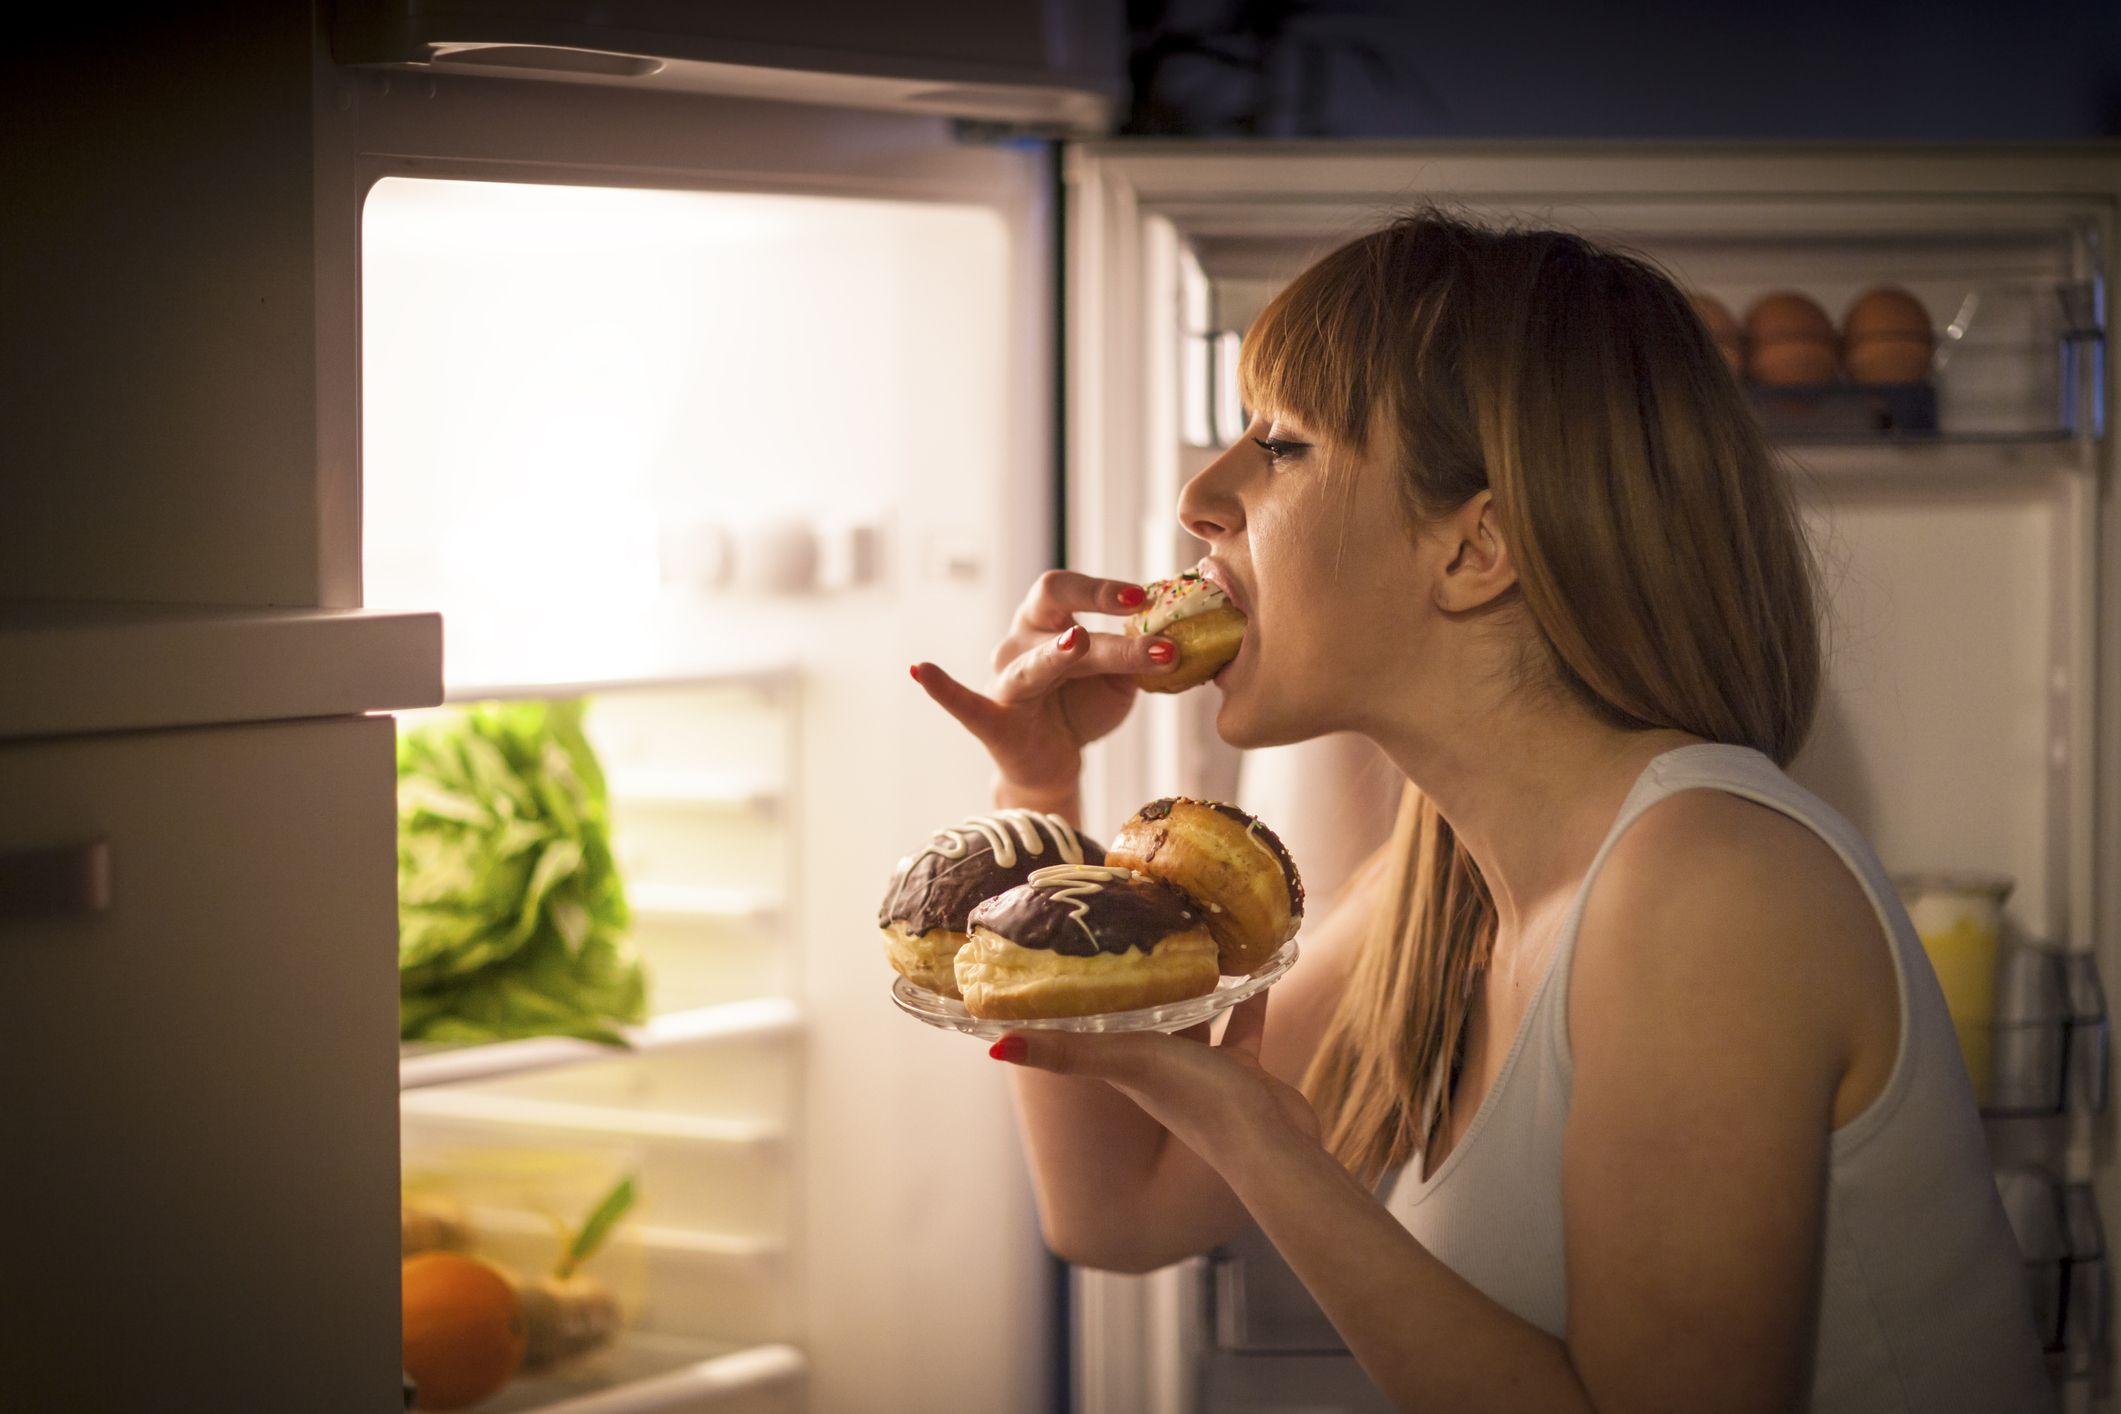 Woman eating away unpleasant emotions